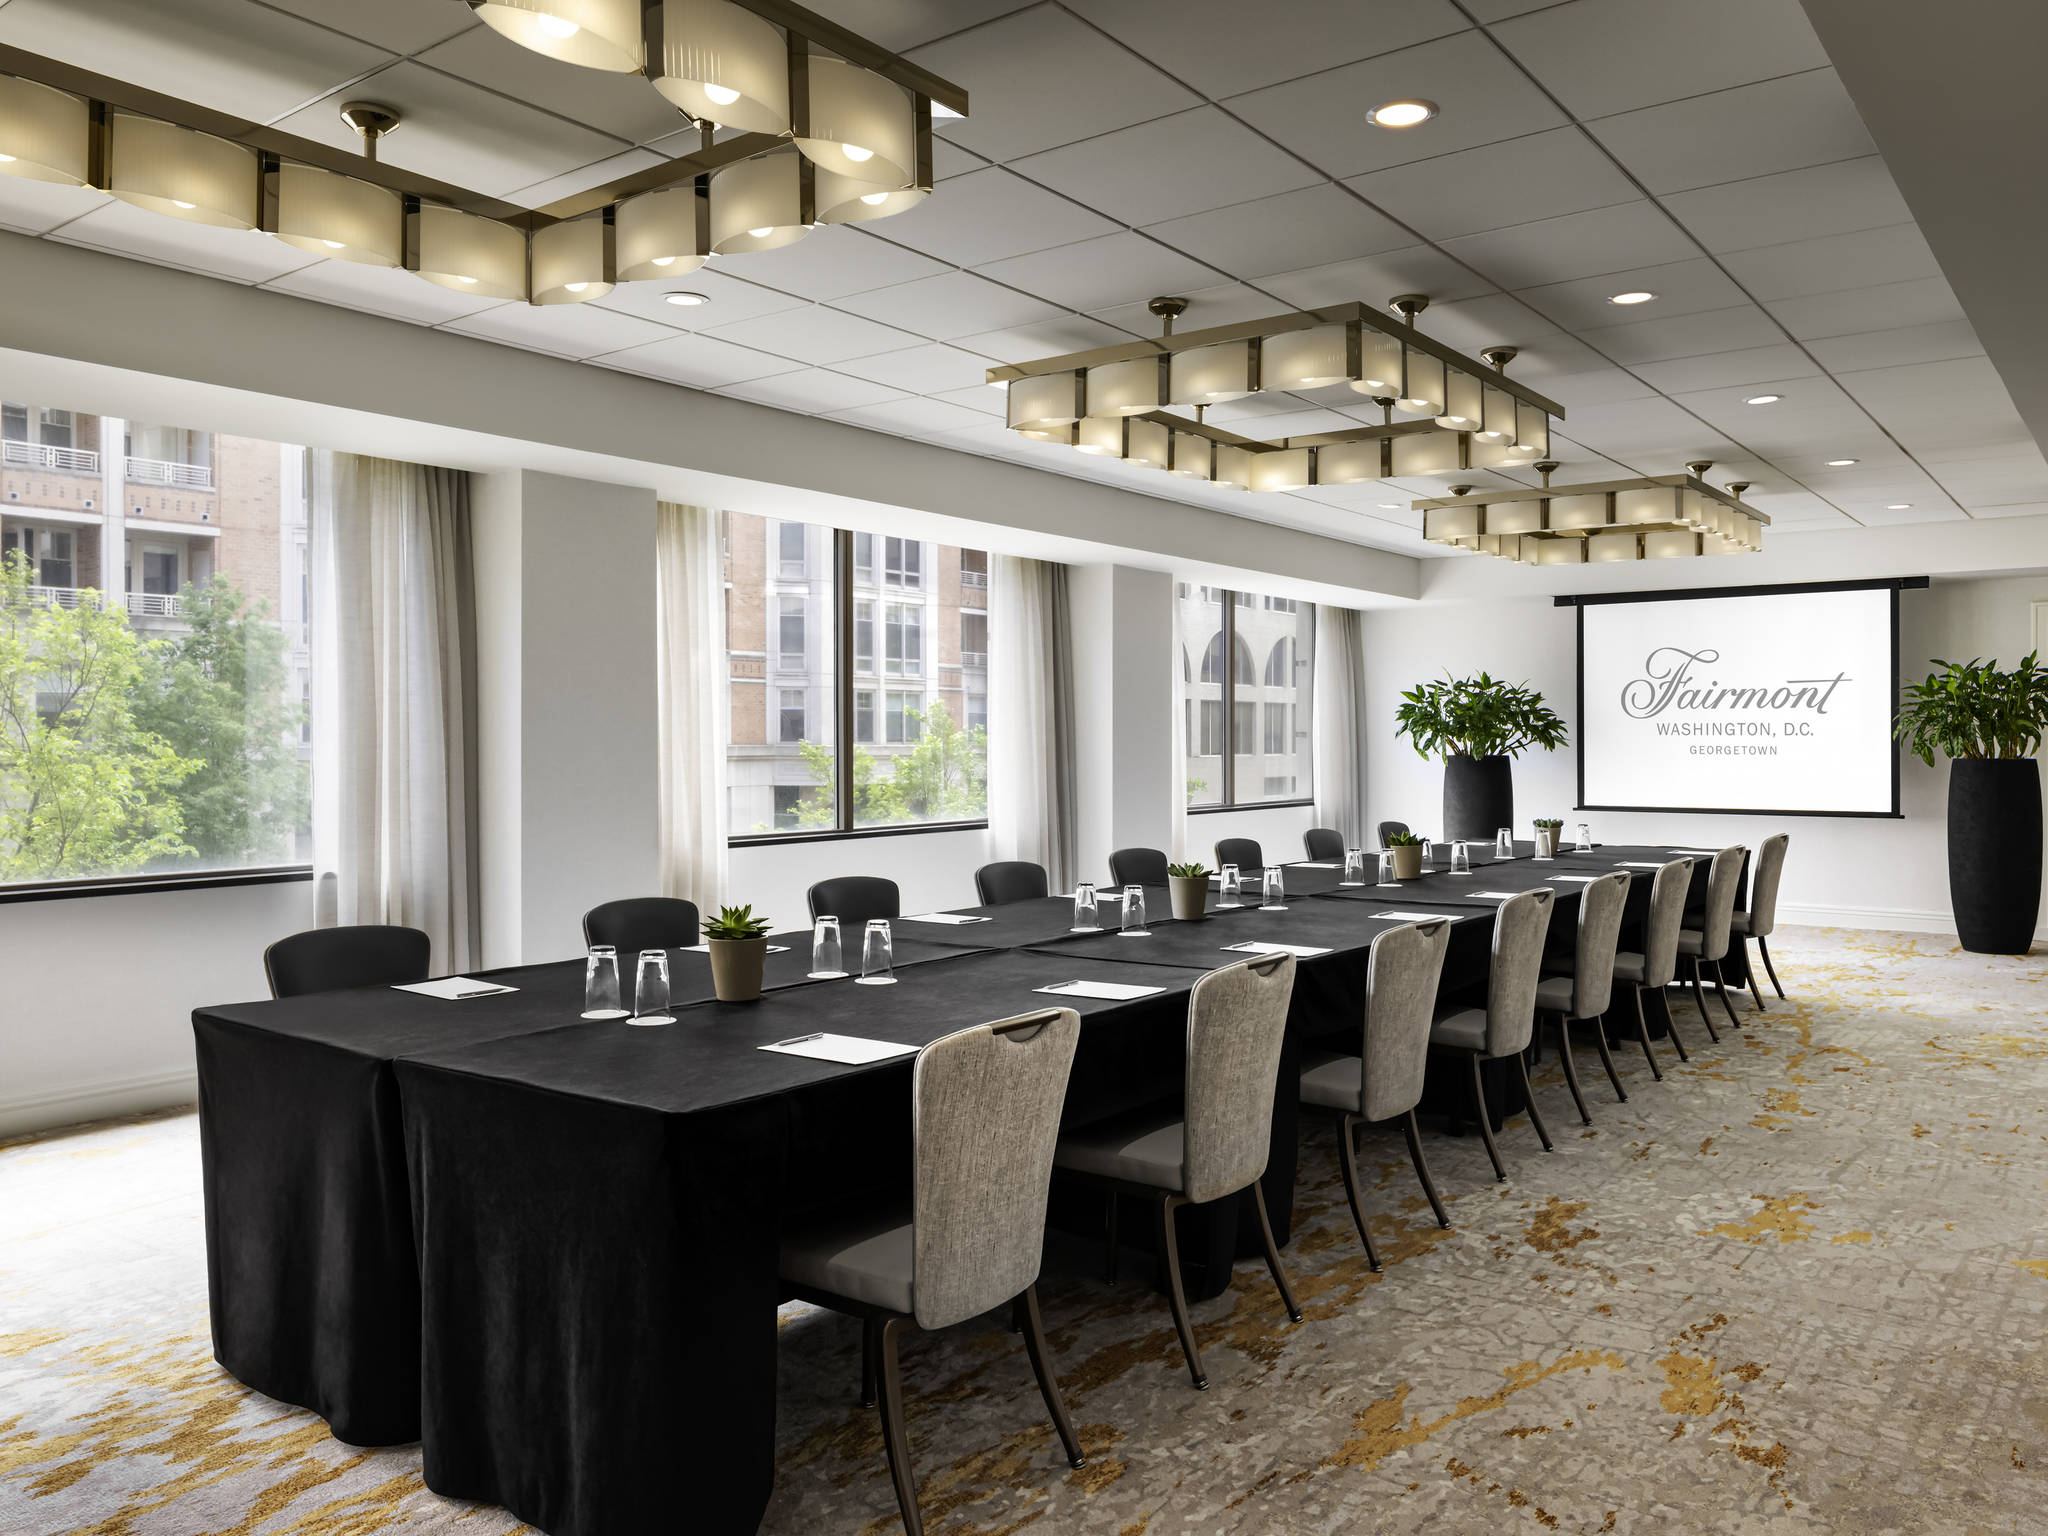 Meetings And Events Fairmont Washington D C Georgetown